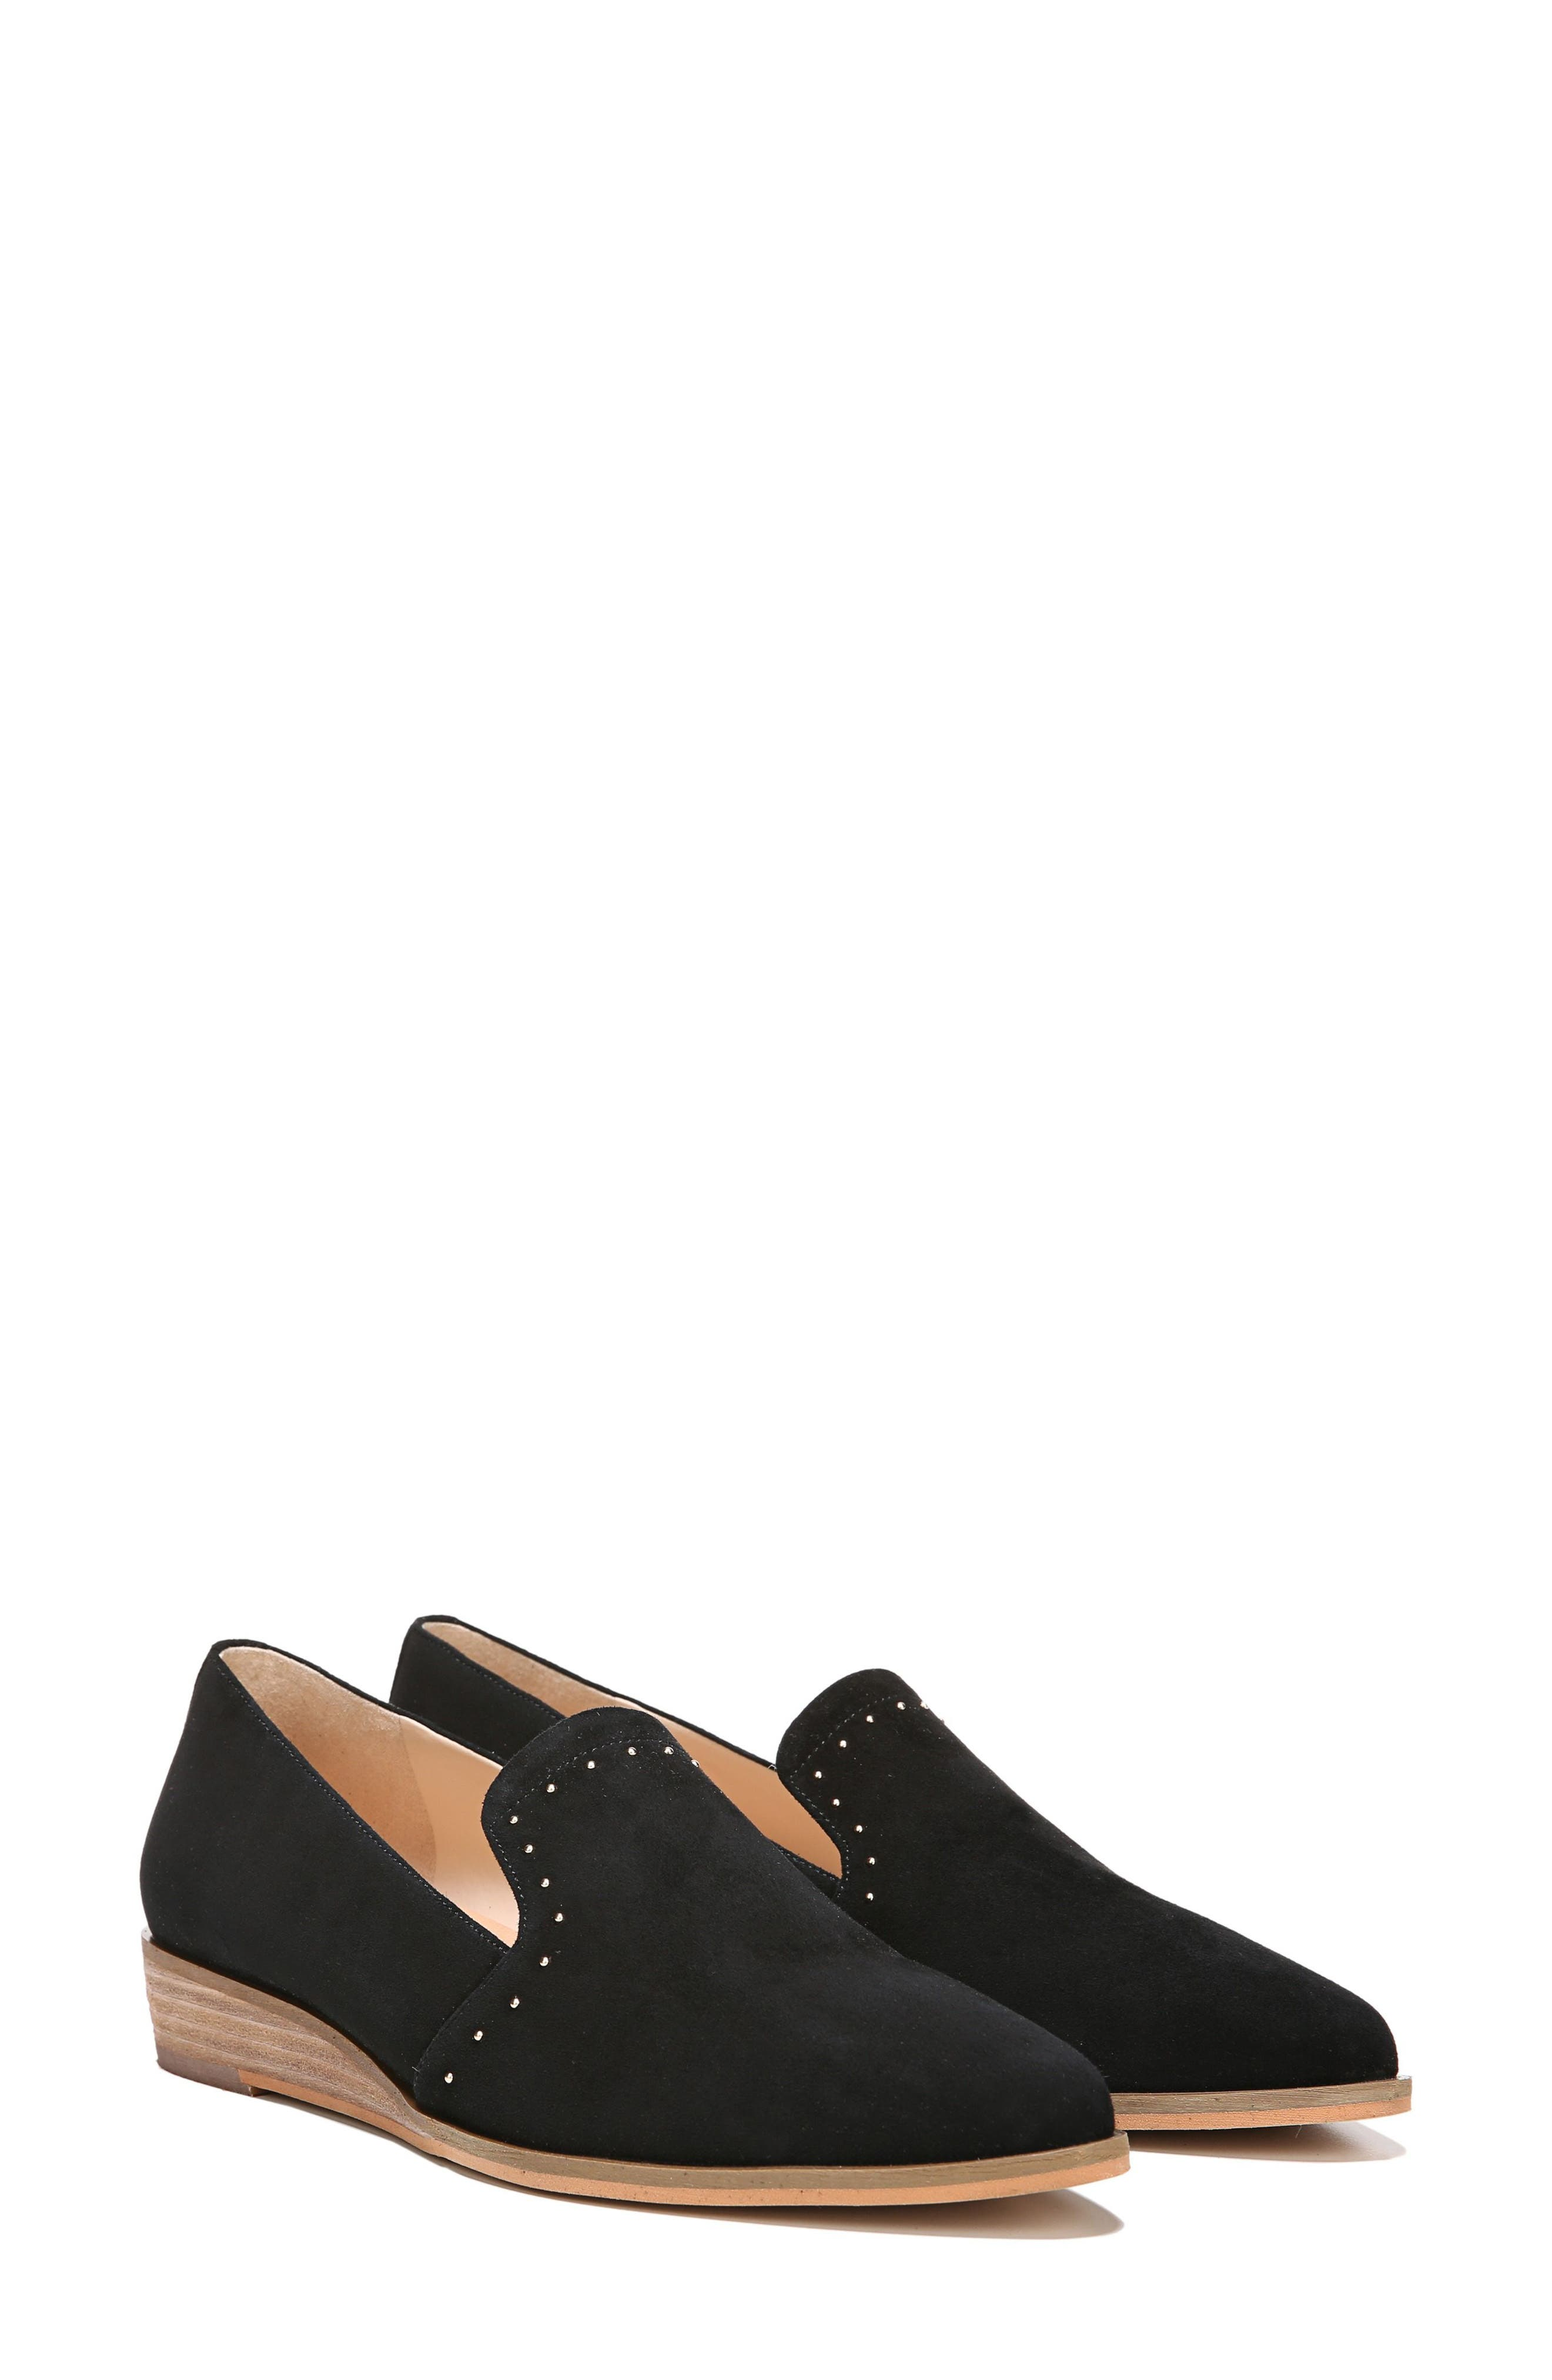 Keane Loafer Wedge,                             Alternate thumbnail 7, color,                             001